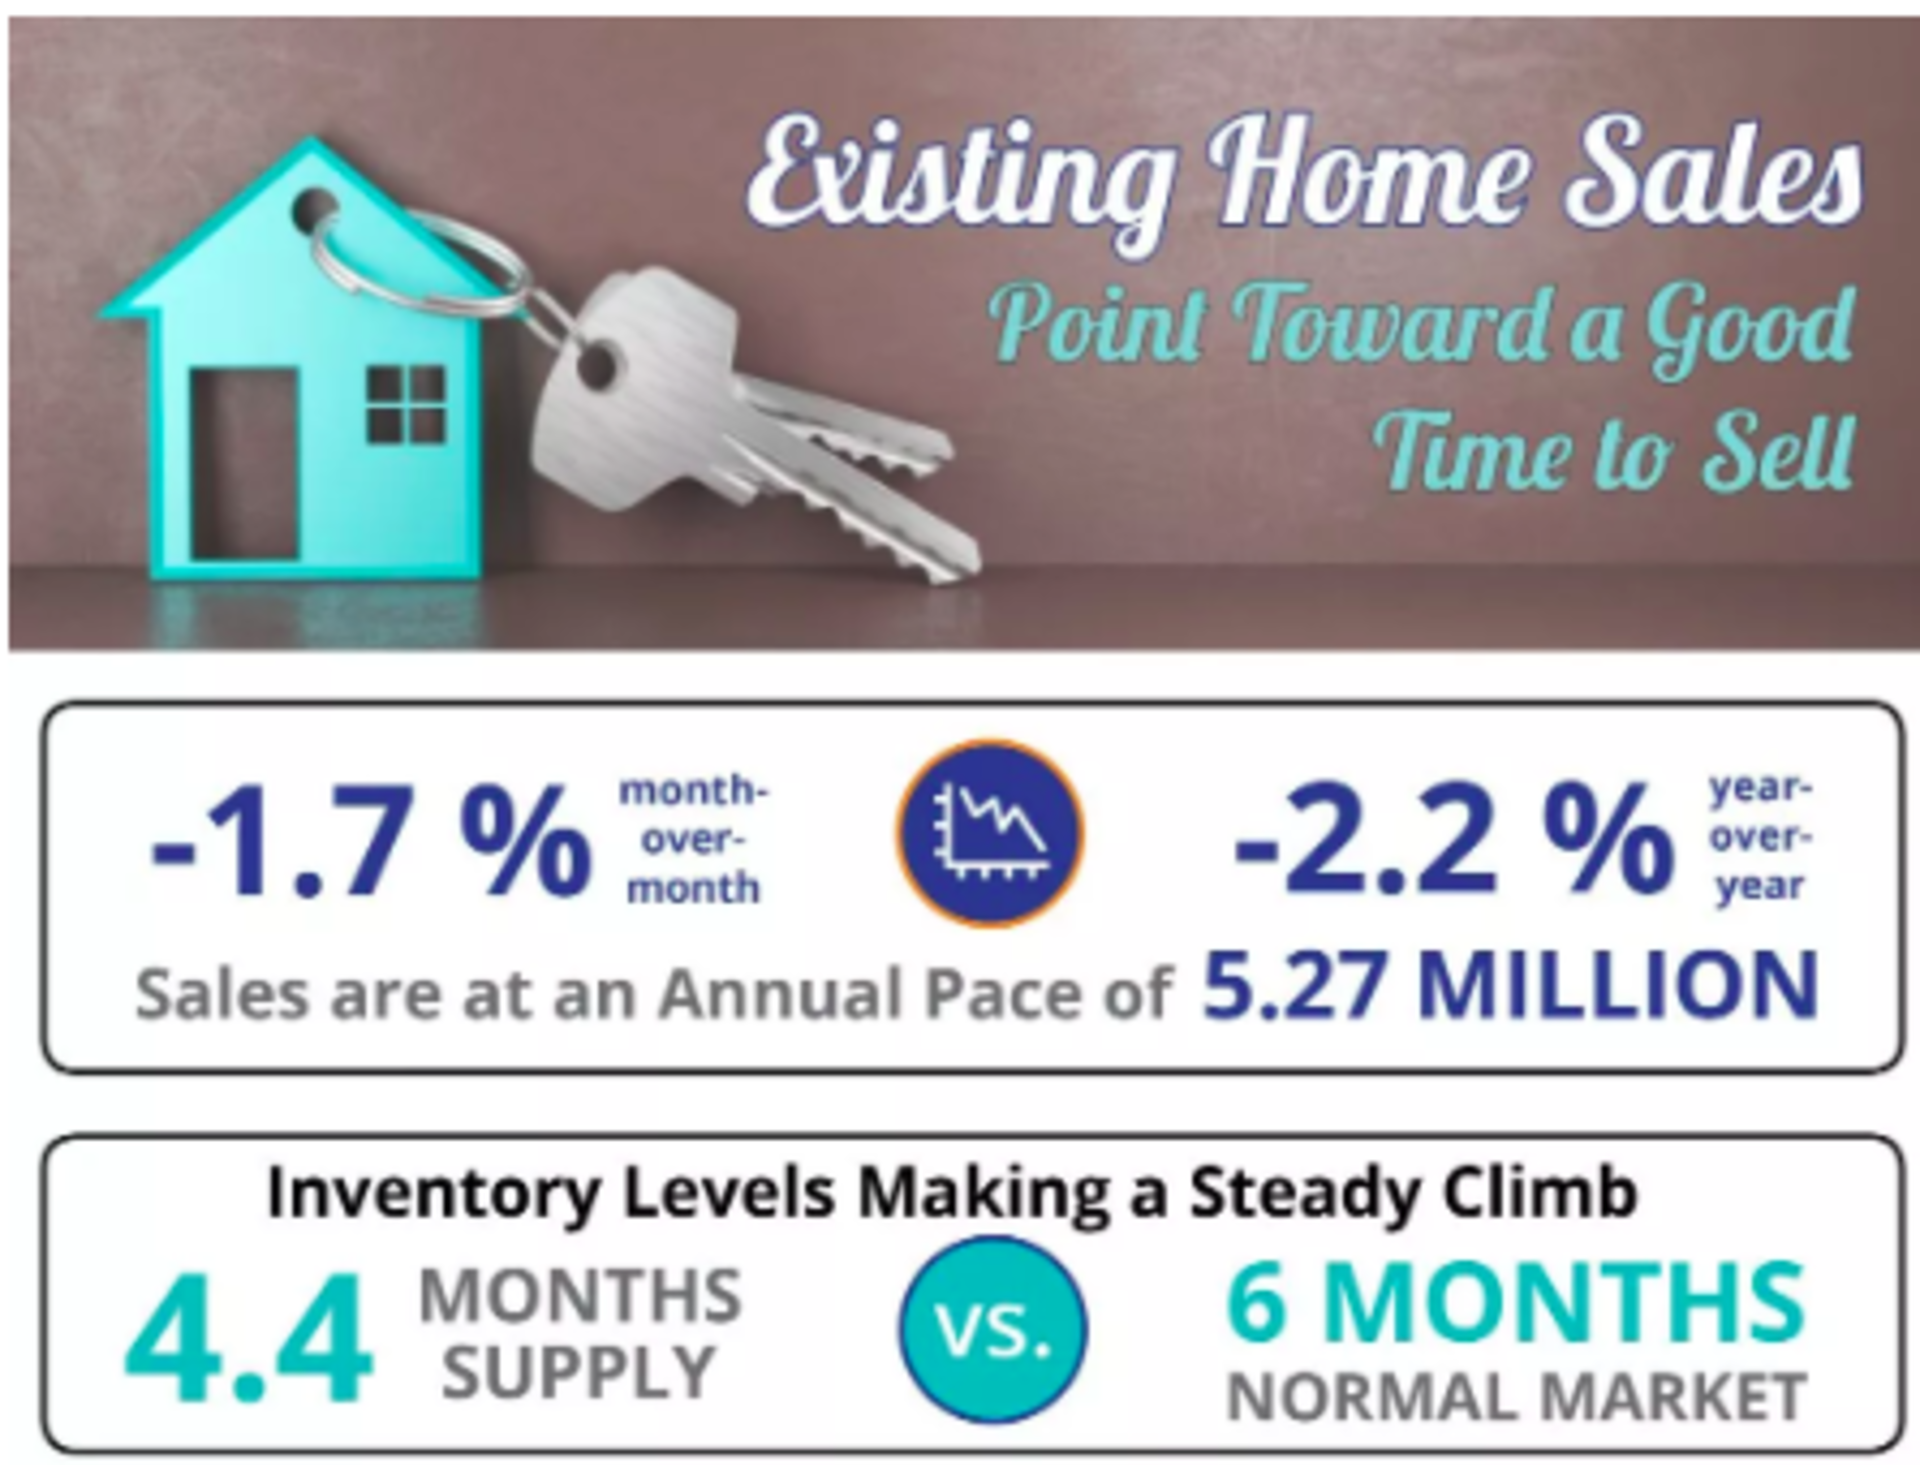 Existing Home Sales Point Toward a Good Time to Sell [INFOGRAPHIC]